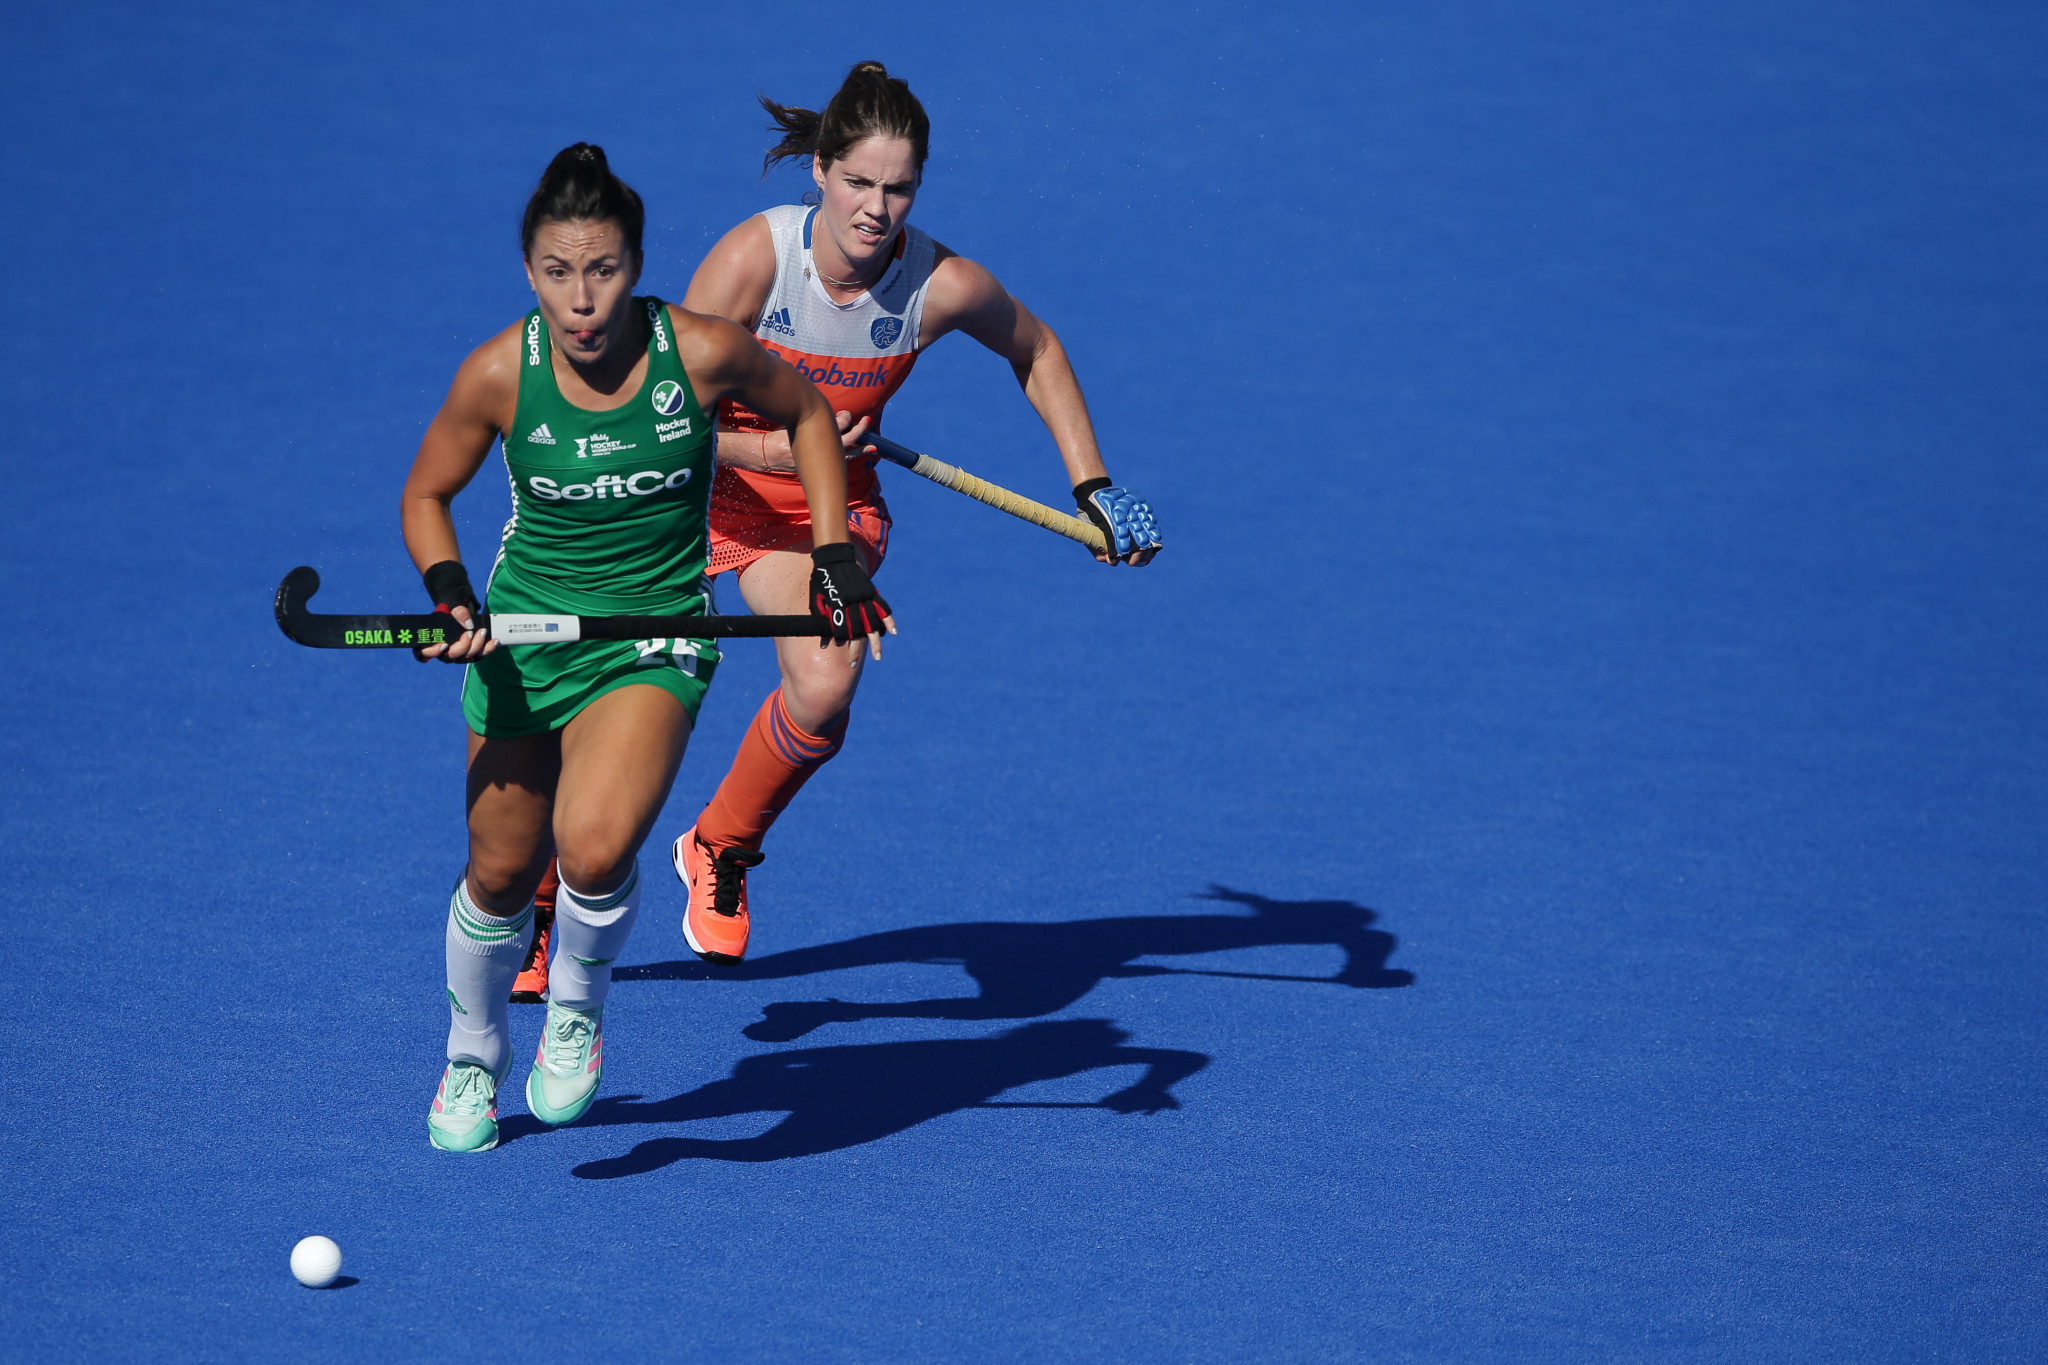 Ireland's women provided a fairytale story at the Hockey World Cup ©Getty Images